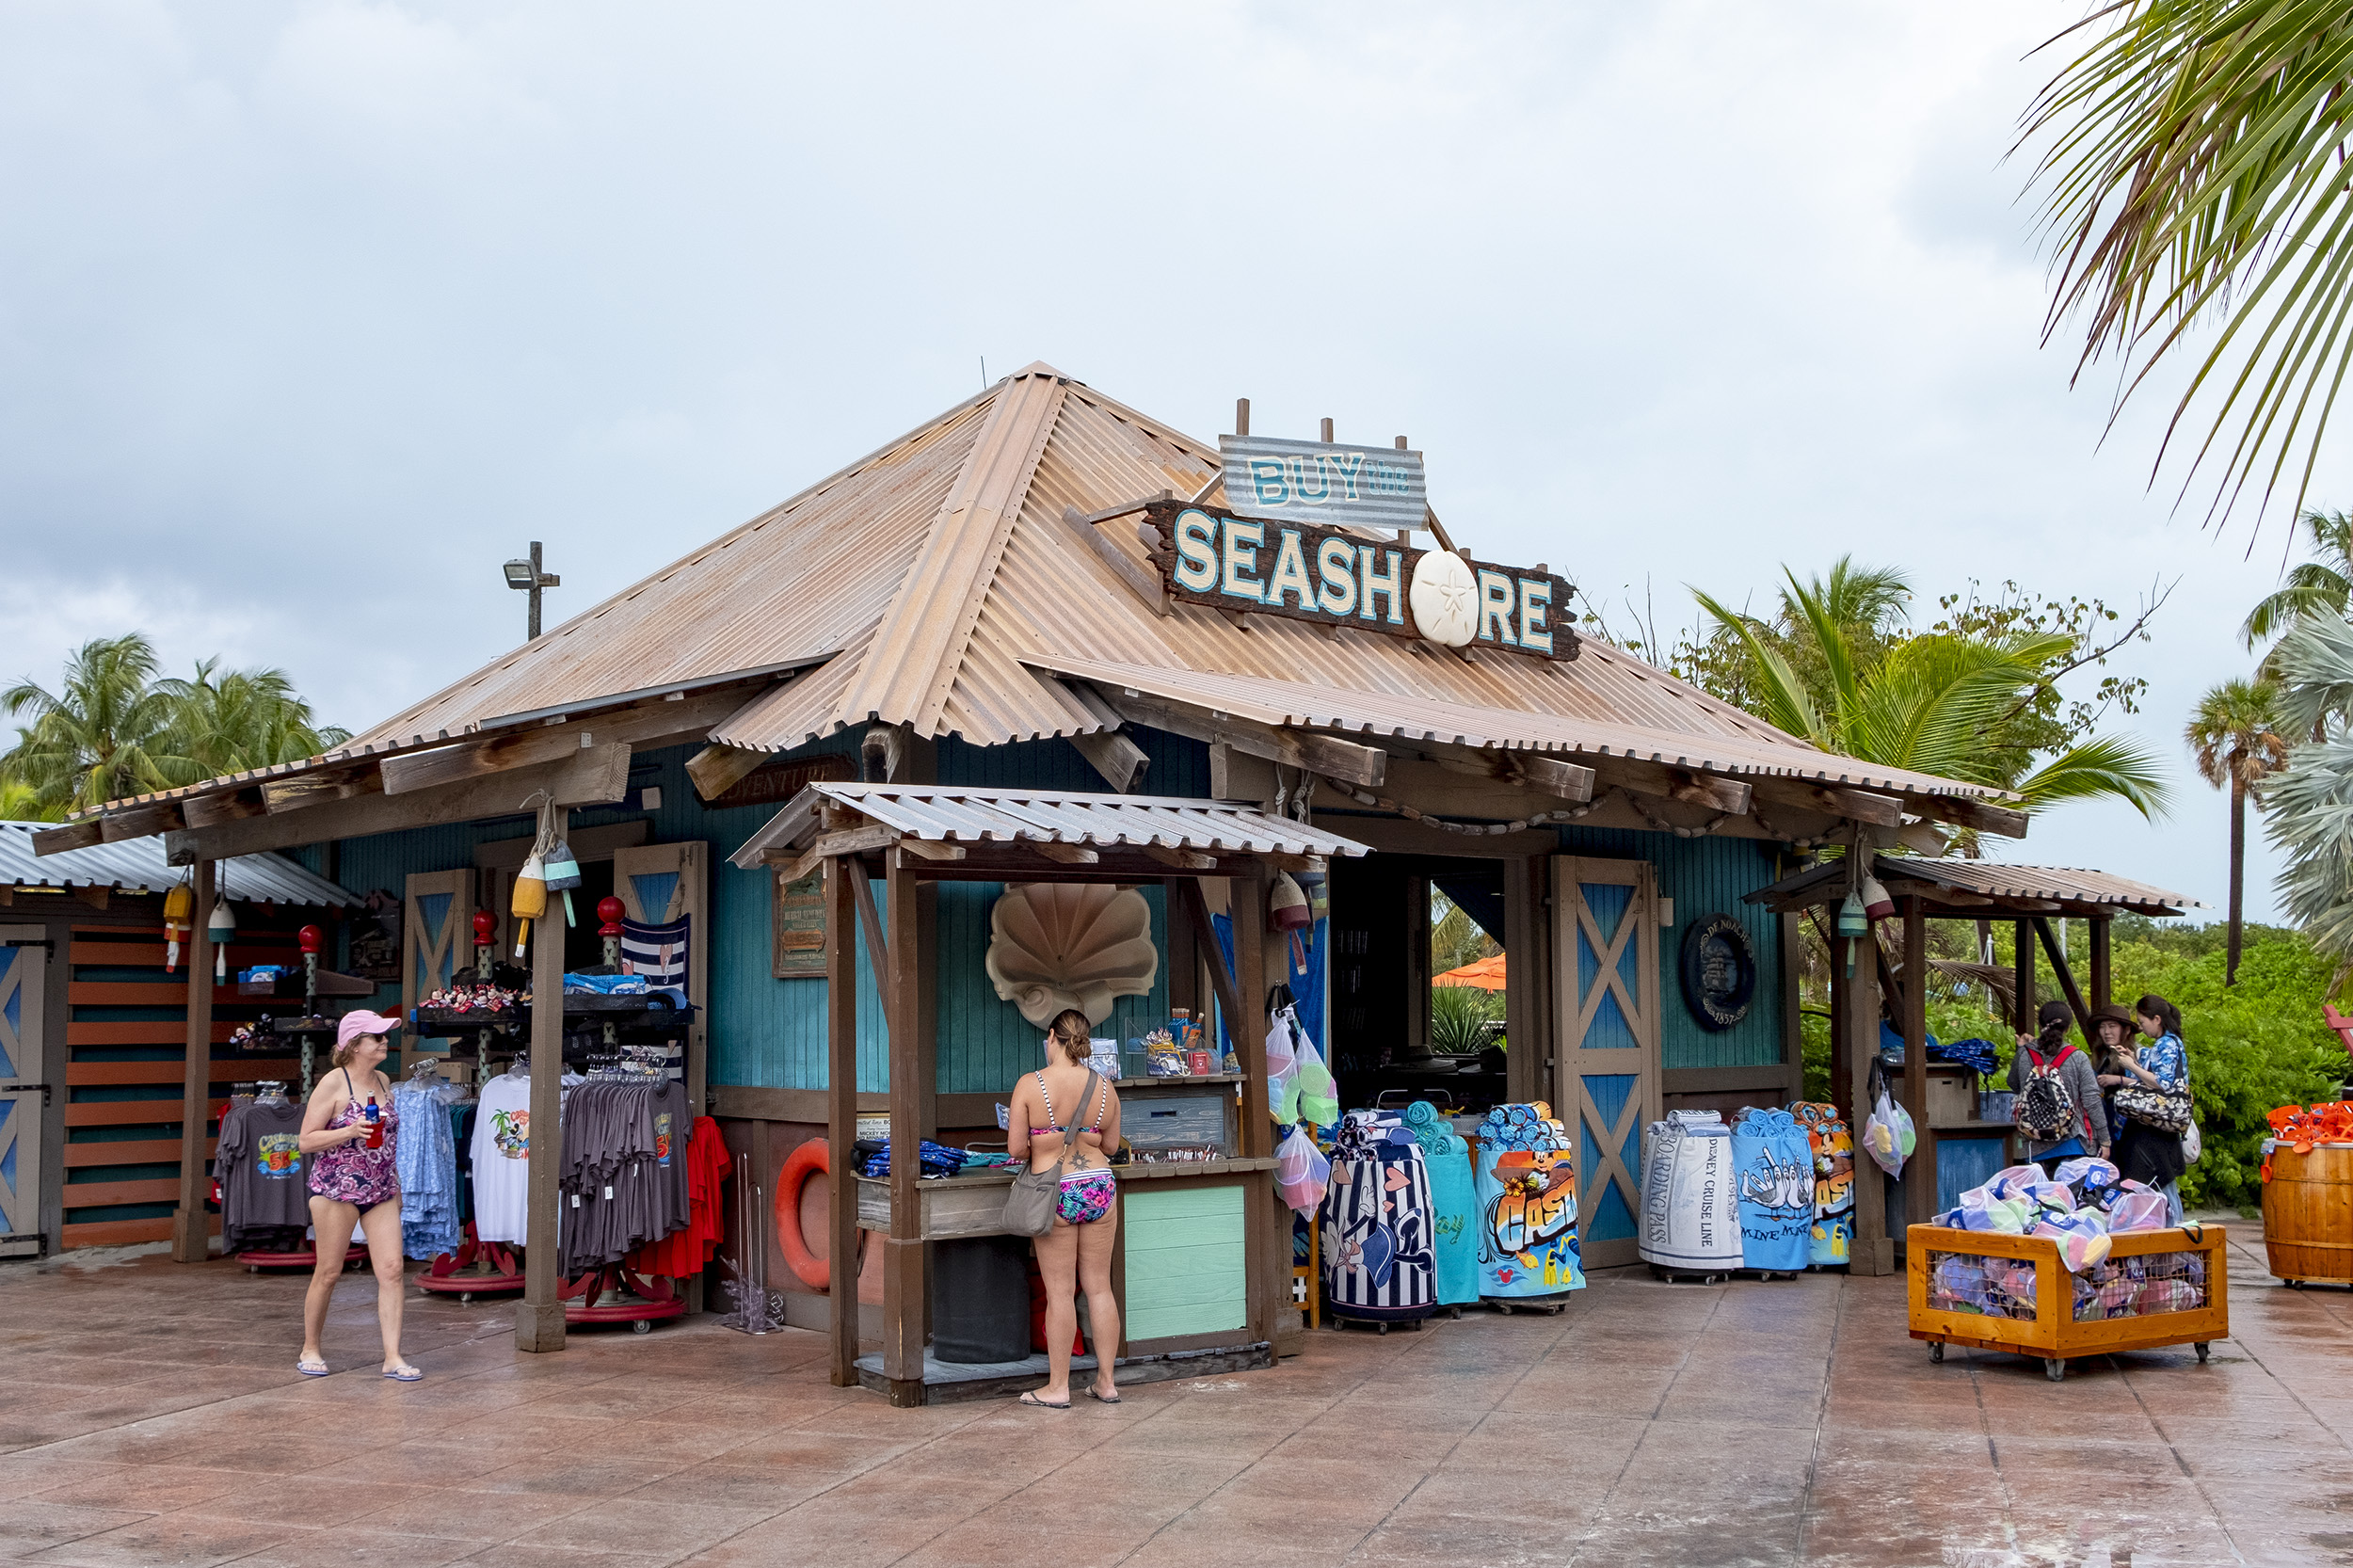 Castaway Cay Buy the Seashore